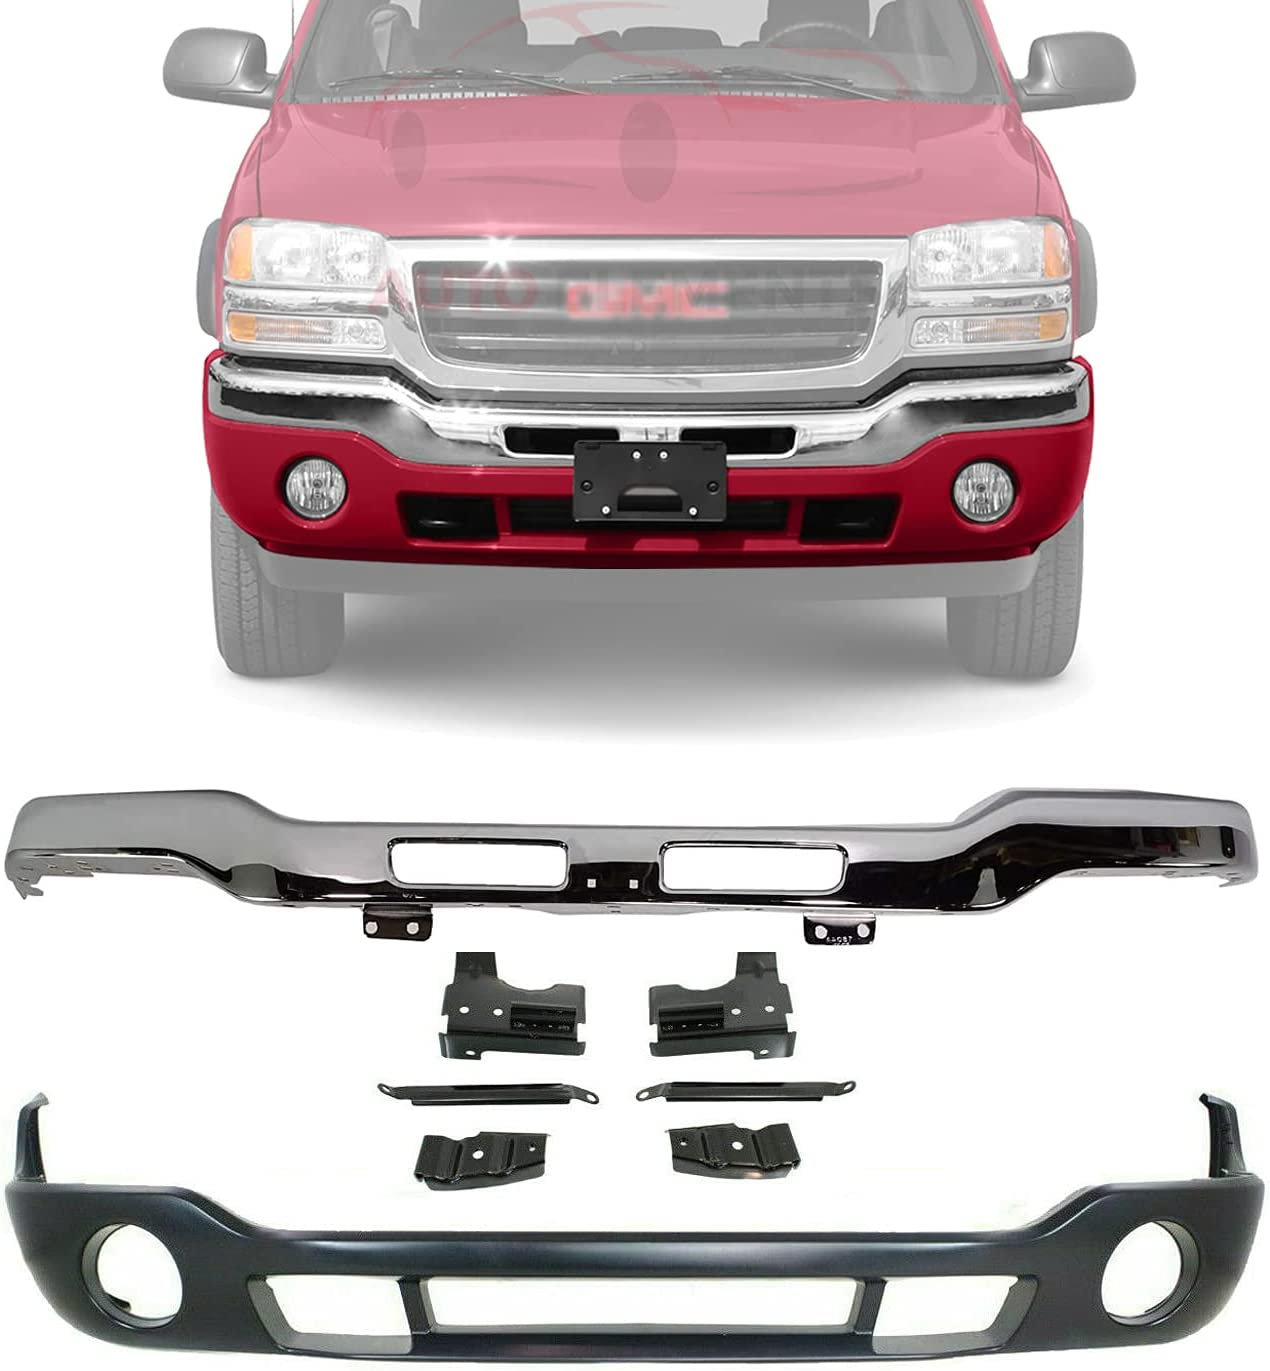 Buy New Front Bumper Chrome Steel With Brackets Lower Valance Primed With Fog Light Holes For 2003 2006 Gmc Sierra 1500 2500hd 3500 12335963 88979837 15098990 Online In Indonesia B07vcyv381